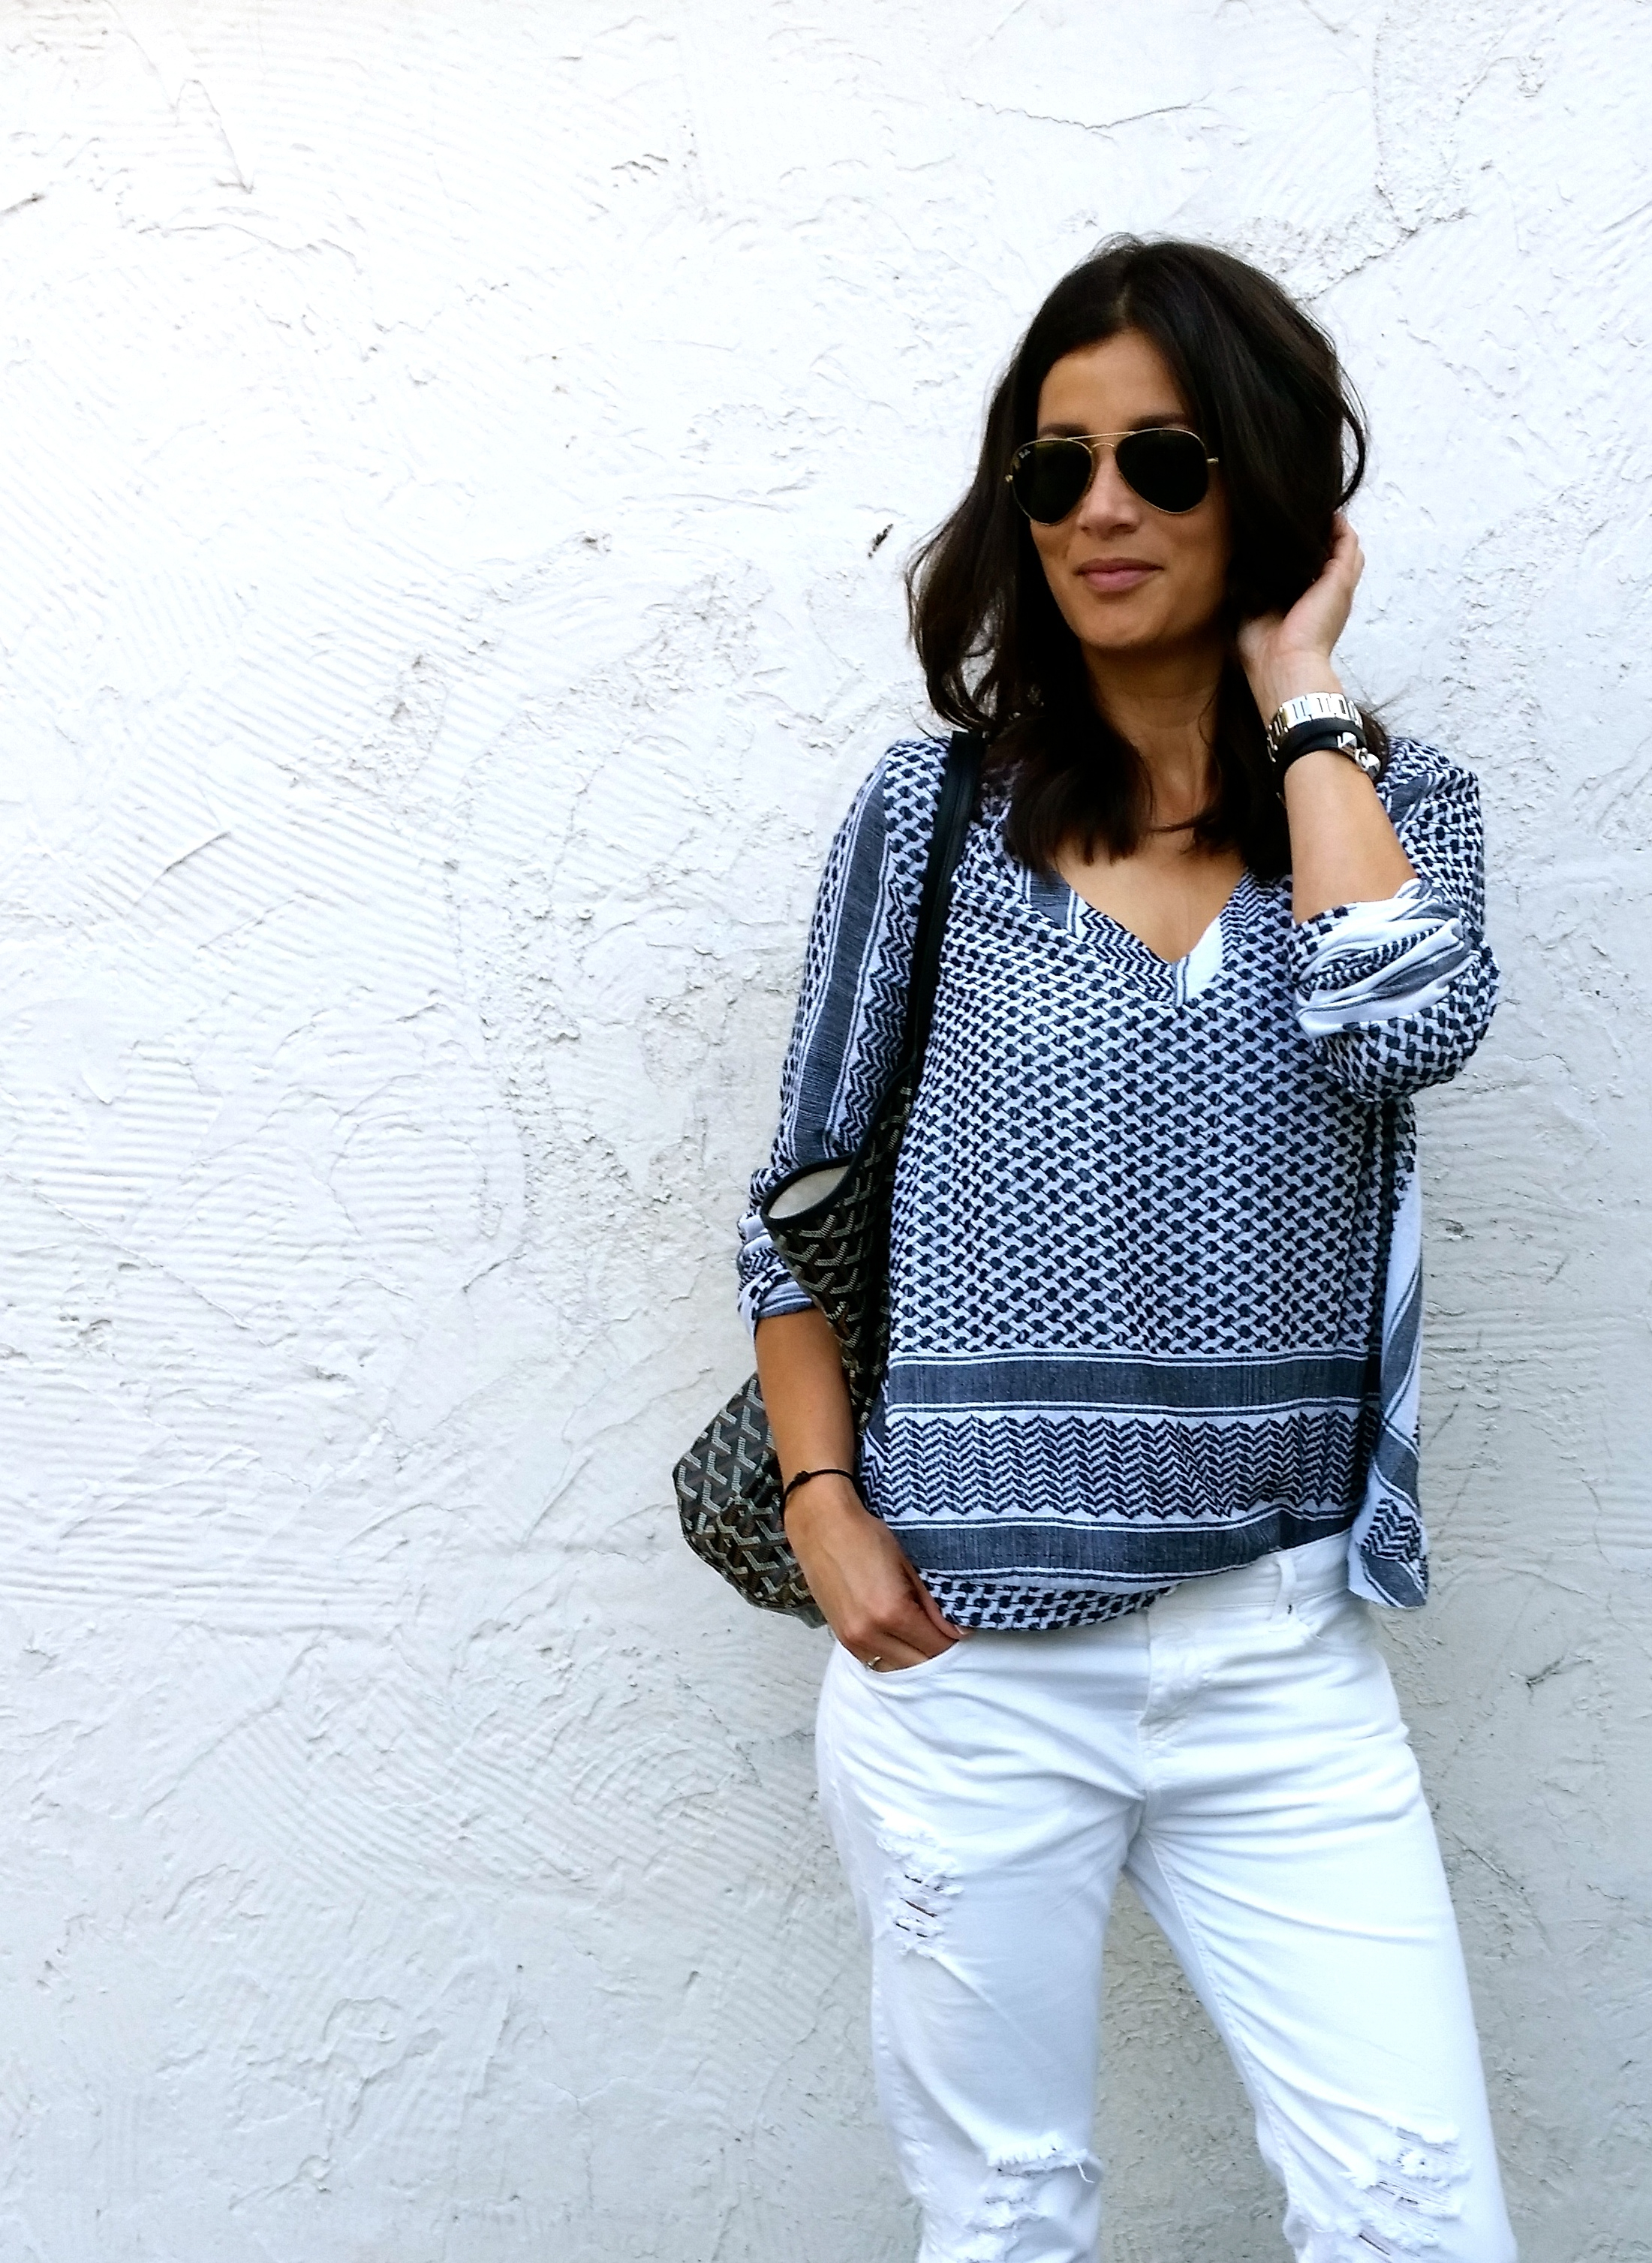 Streetstyle Cecilie Copenhagen top by Sabrina styleblogger of BlogForShops